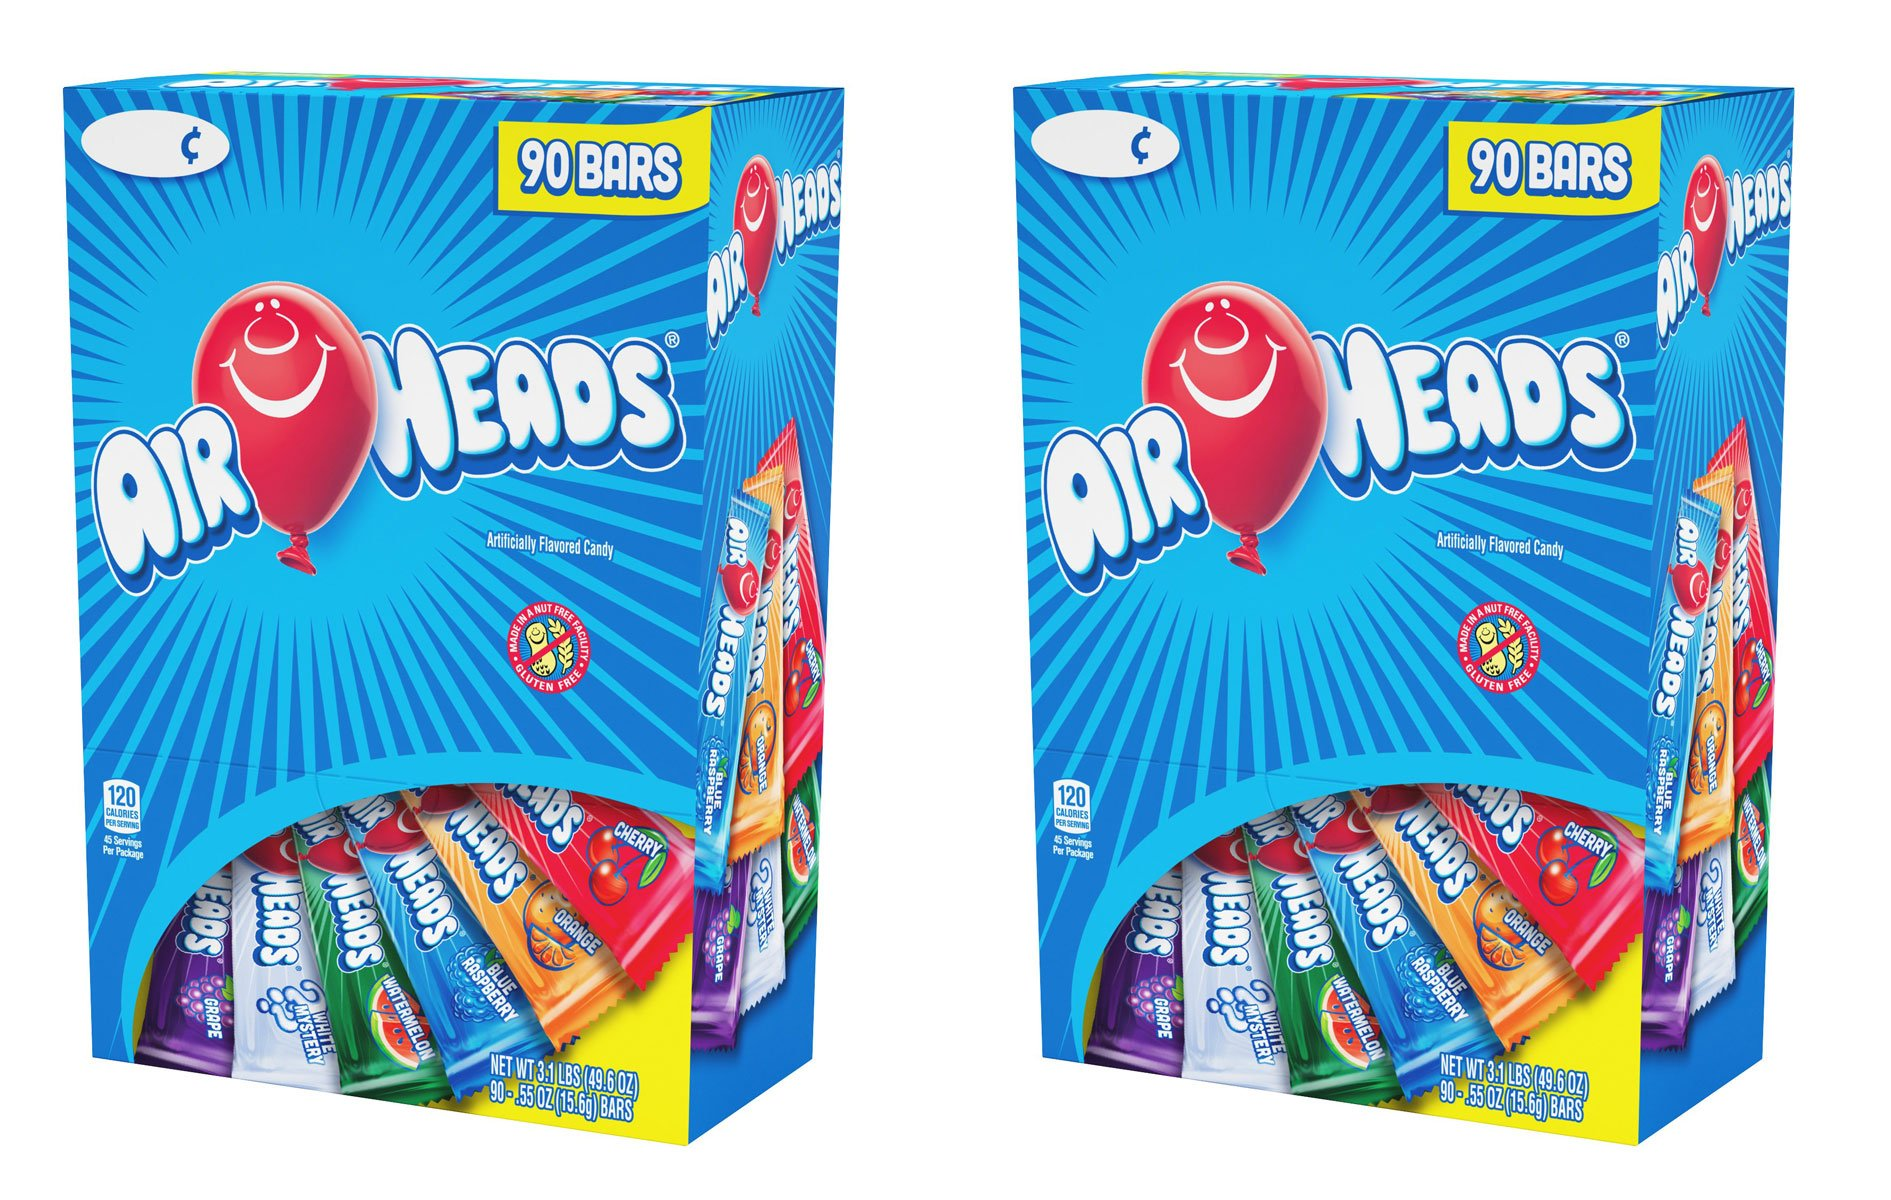 Airheads Chewy Fruit Candy, stocking stuffer, Variety Pack, 90 Count, 3.1lbs, 2 Pack